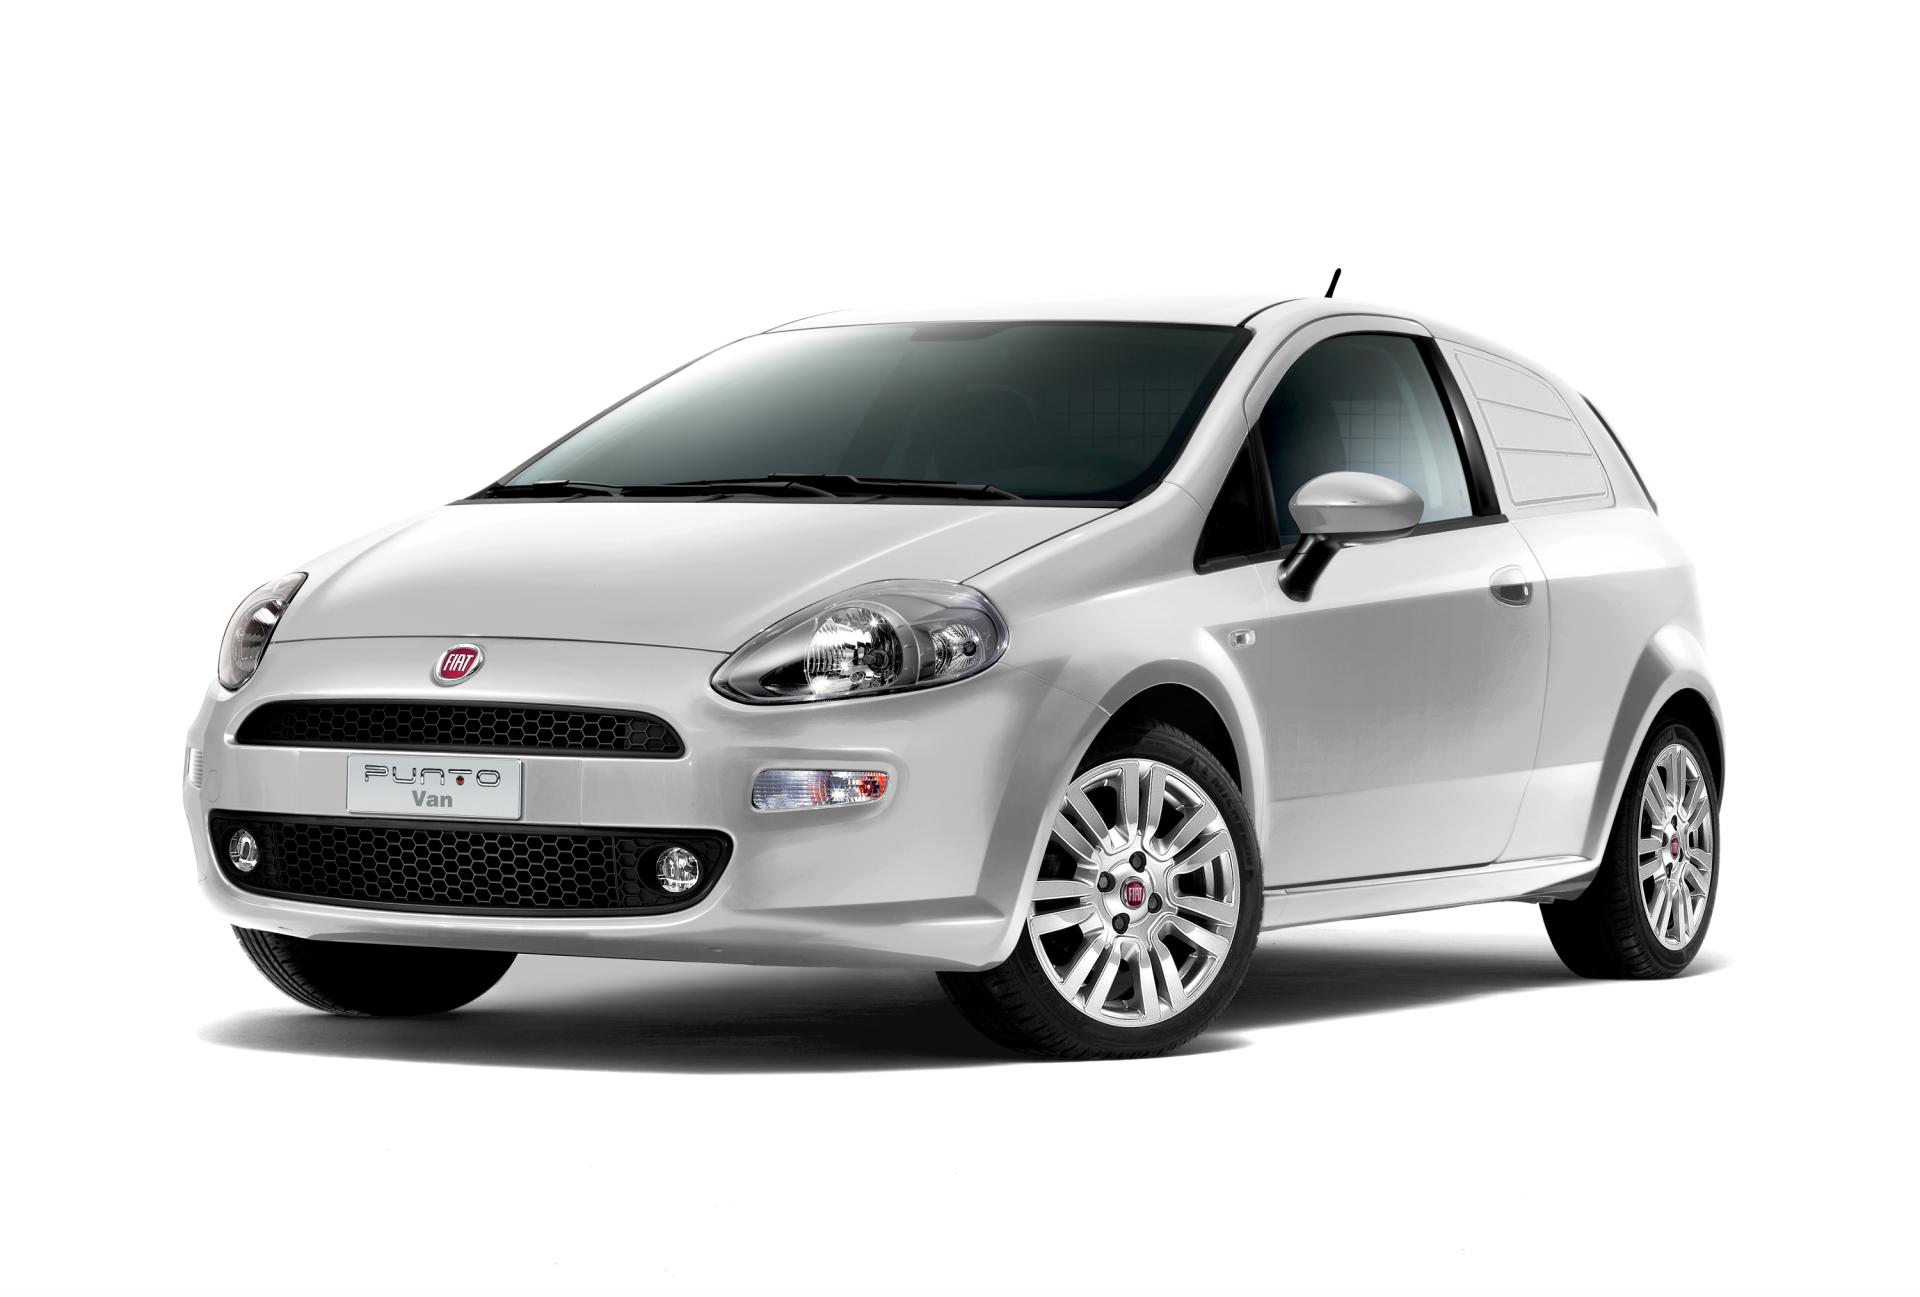 2012 fiat punto van. Black Bedroom Furniture Sets. Home Design Ideas